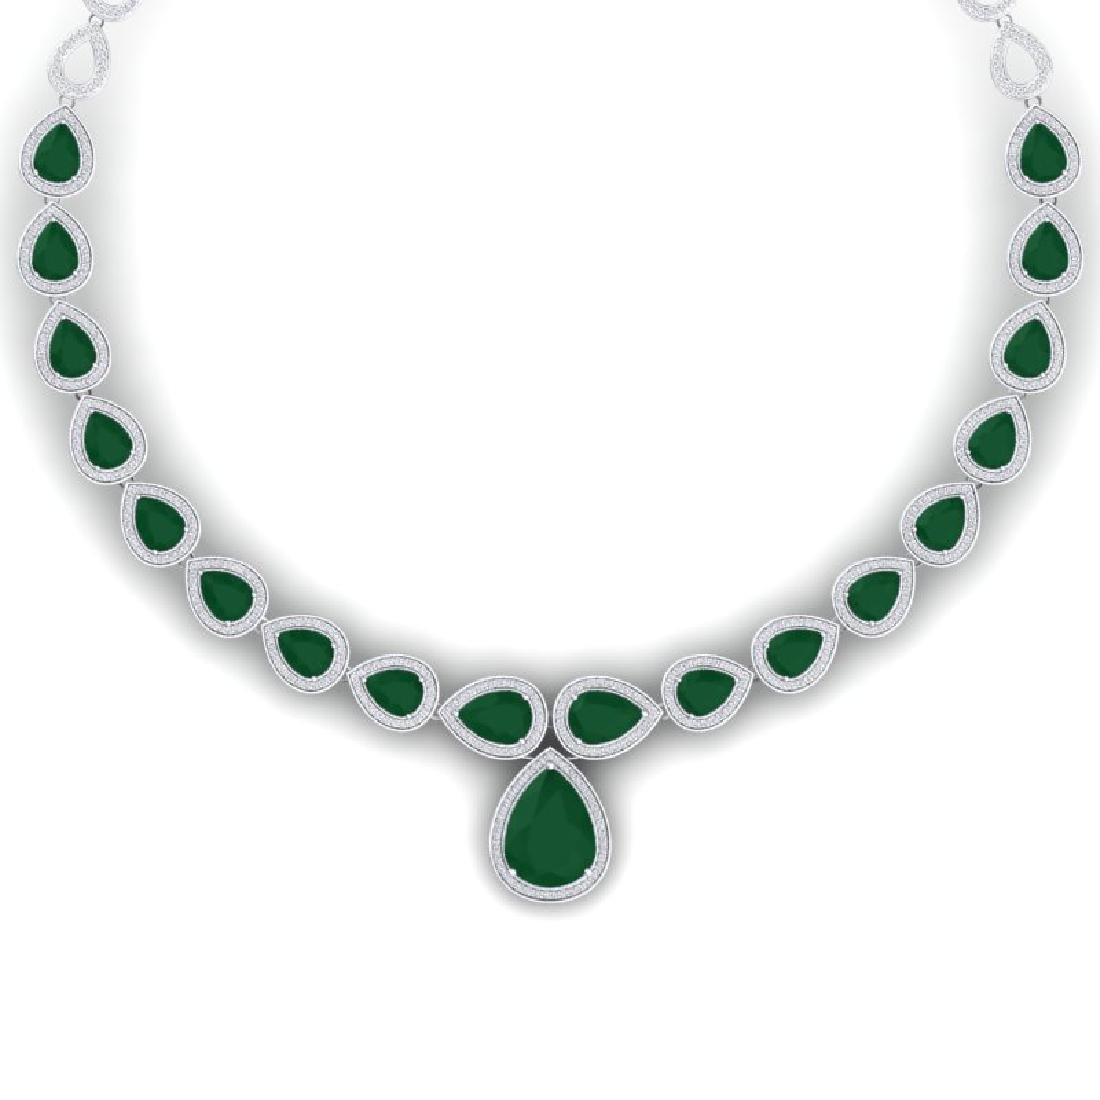 51.41 CTW Royalty Emerald & VS Diamond Necklace 18K